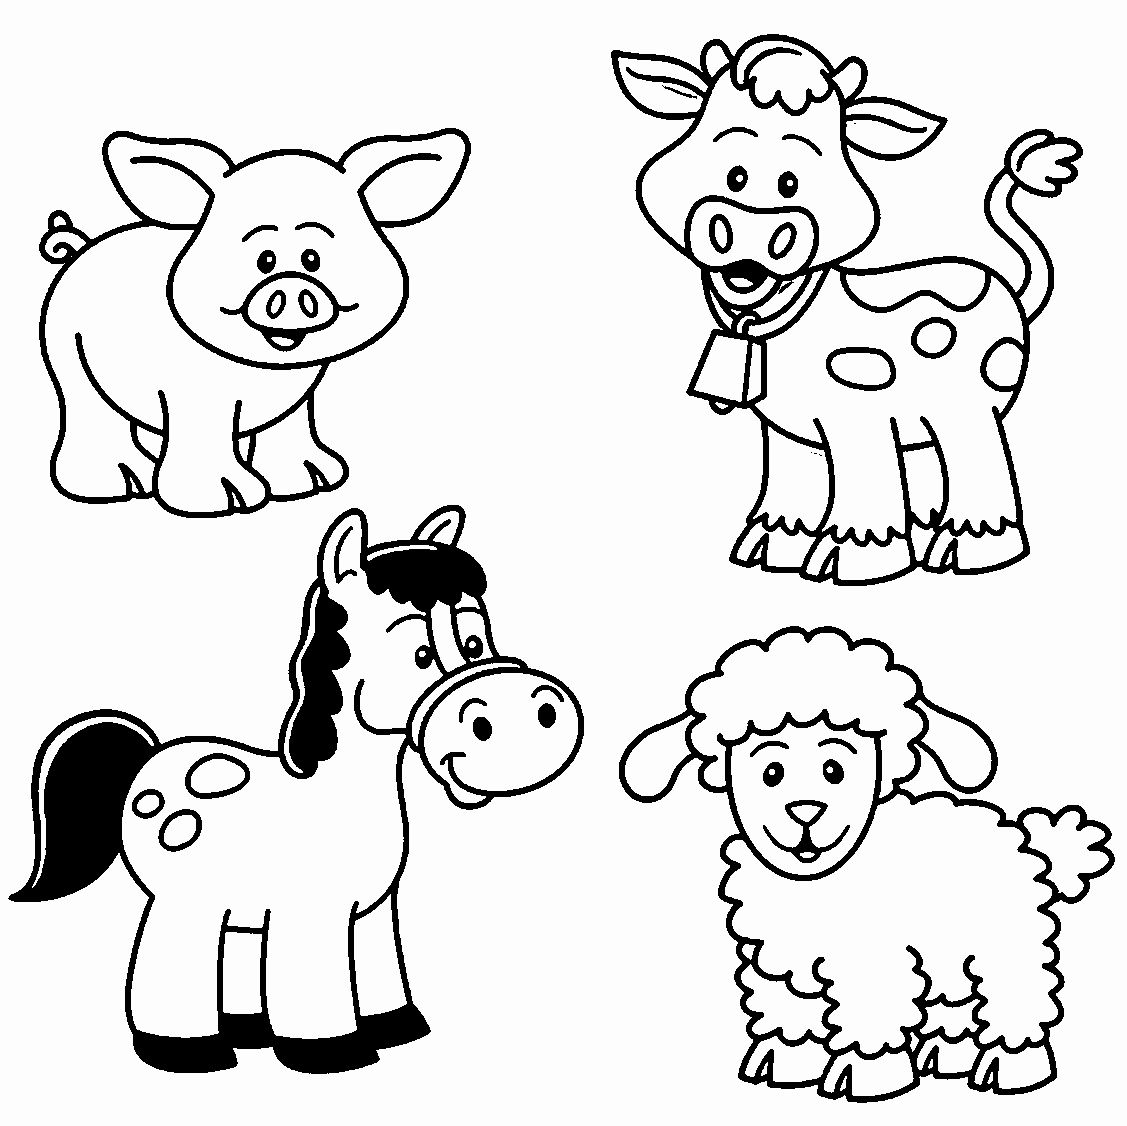 Animals Coloring Book Serial Number New Laura Anderson Laurabeth On Pinterest Zoo Animal Coloring Pages Animal Coloring Books Farm Animal Coloring Pages